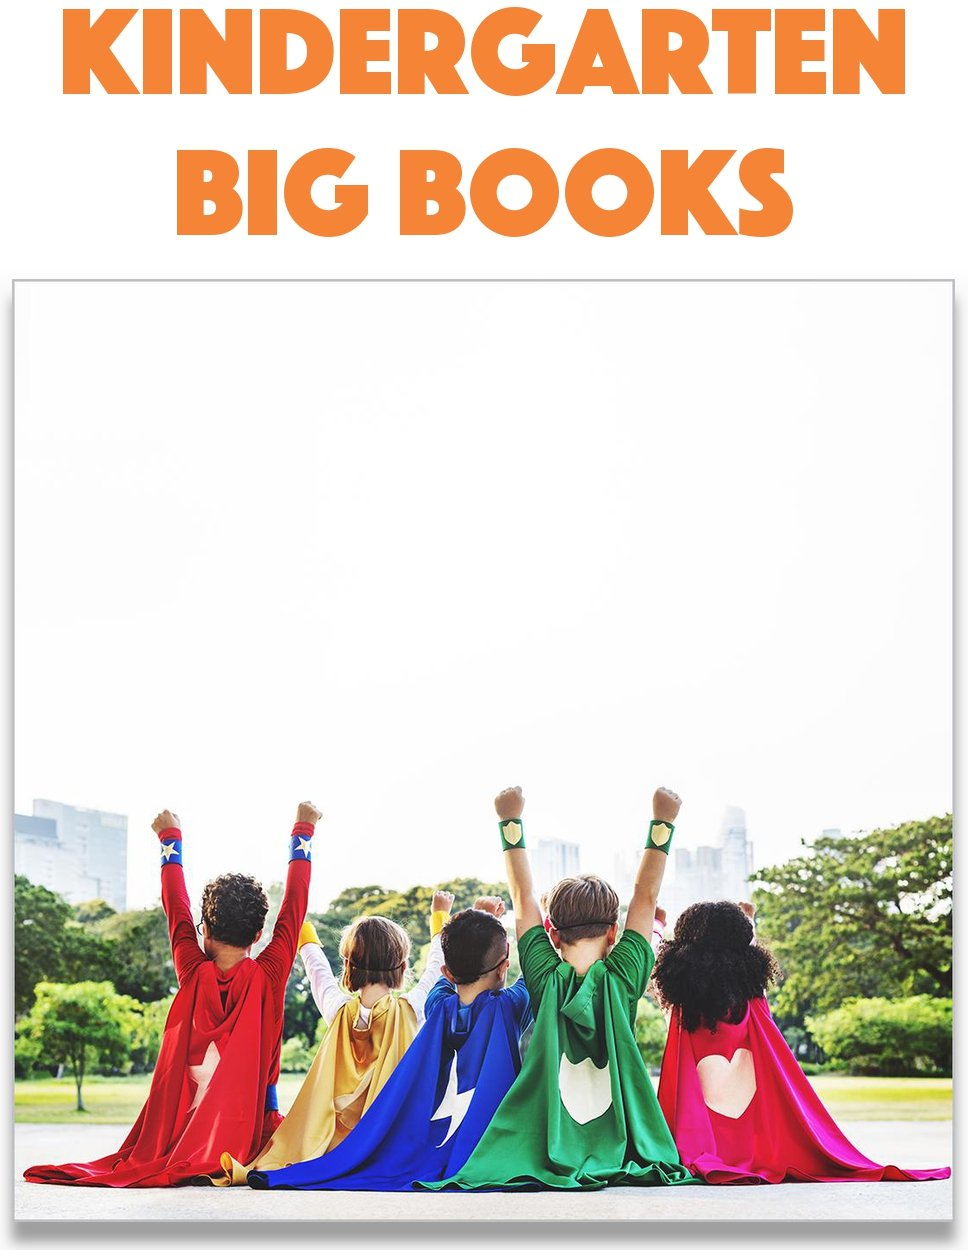 Kindergarten Big Books